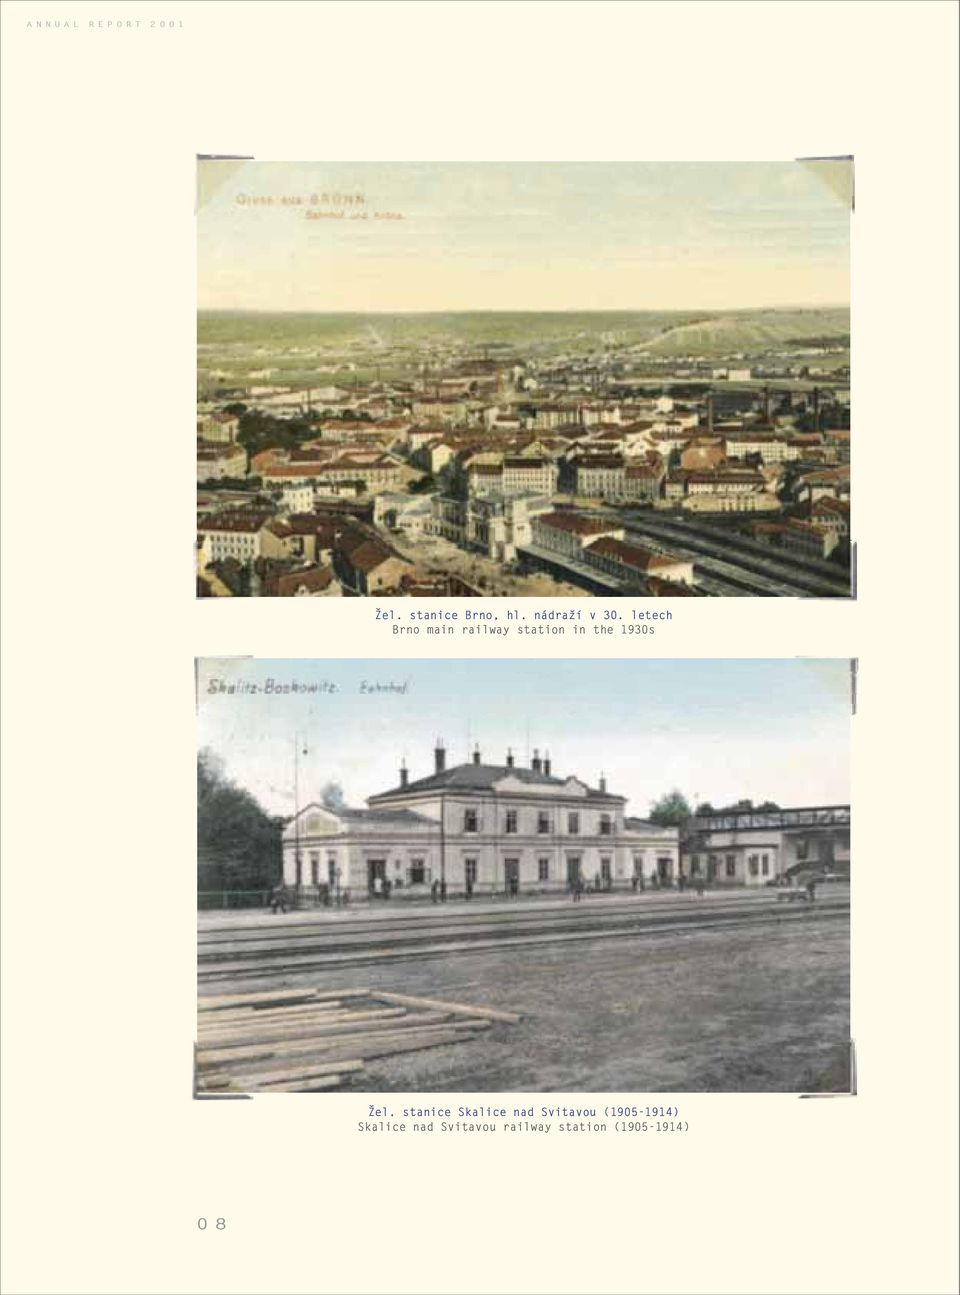 letech Brno main railway station in the 1930s el.